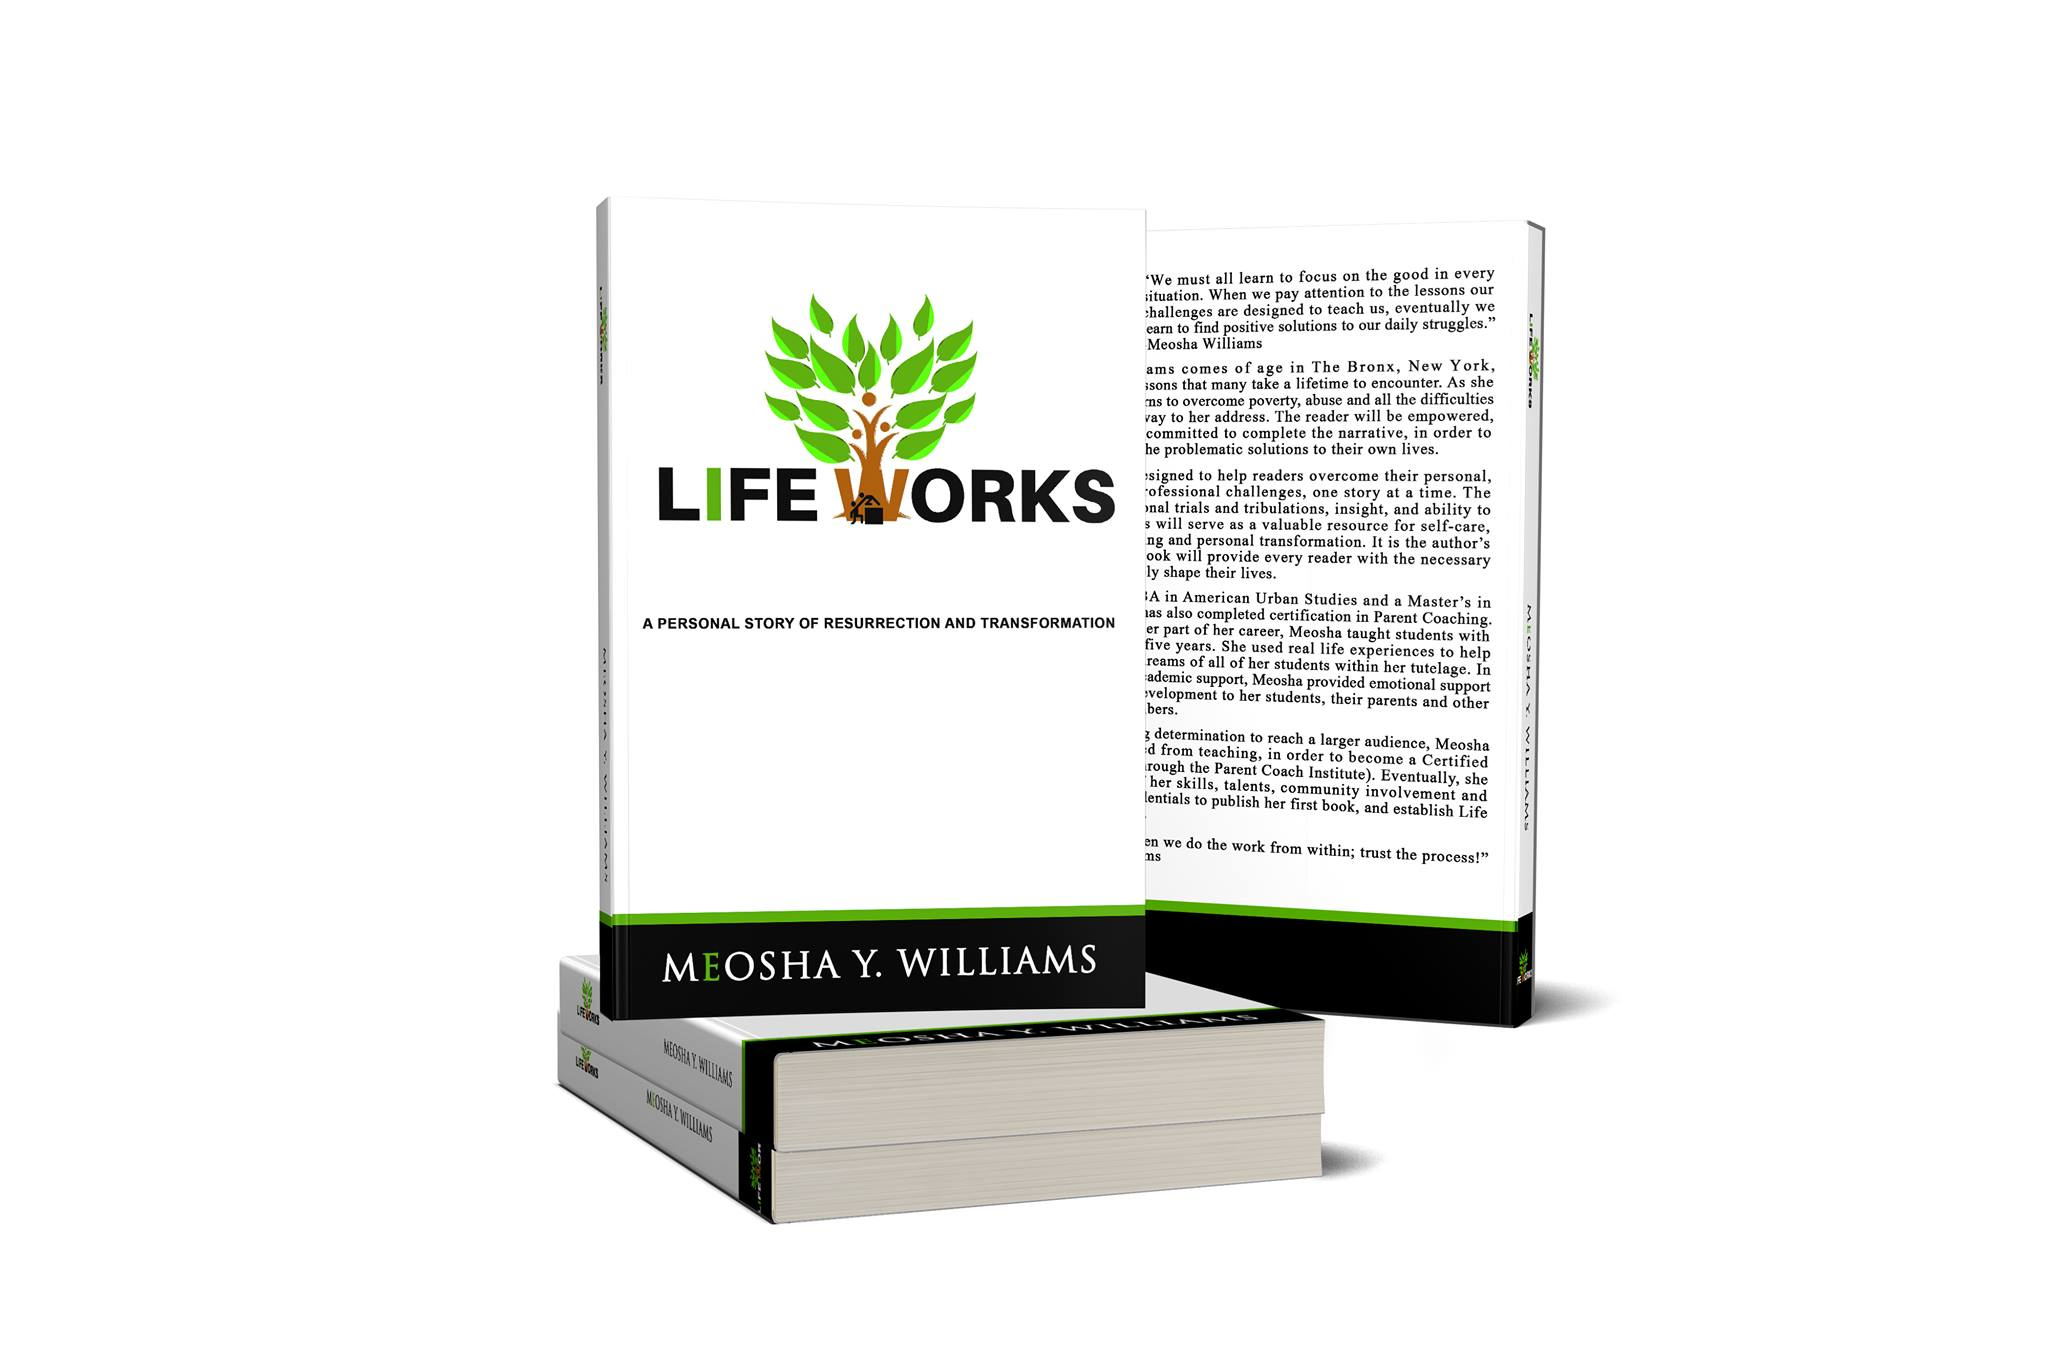 Life Works: A Personal Story of Resurrection and Transformation